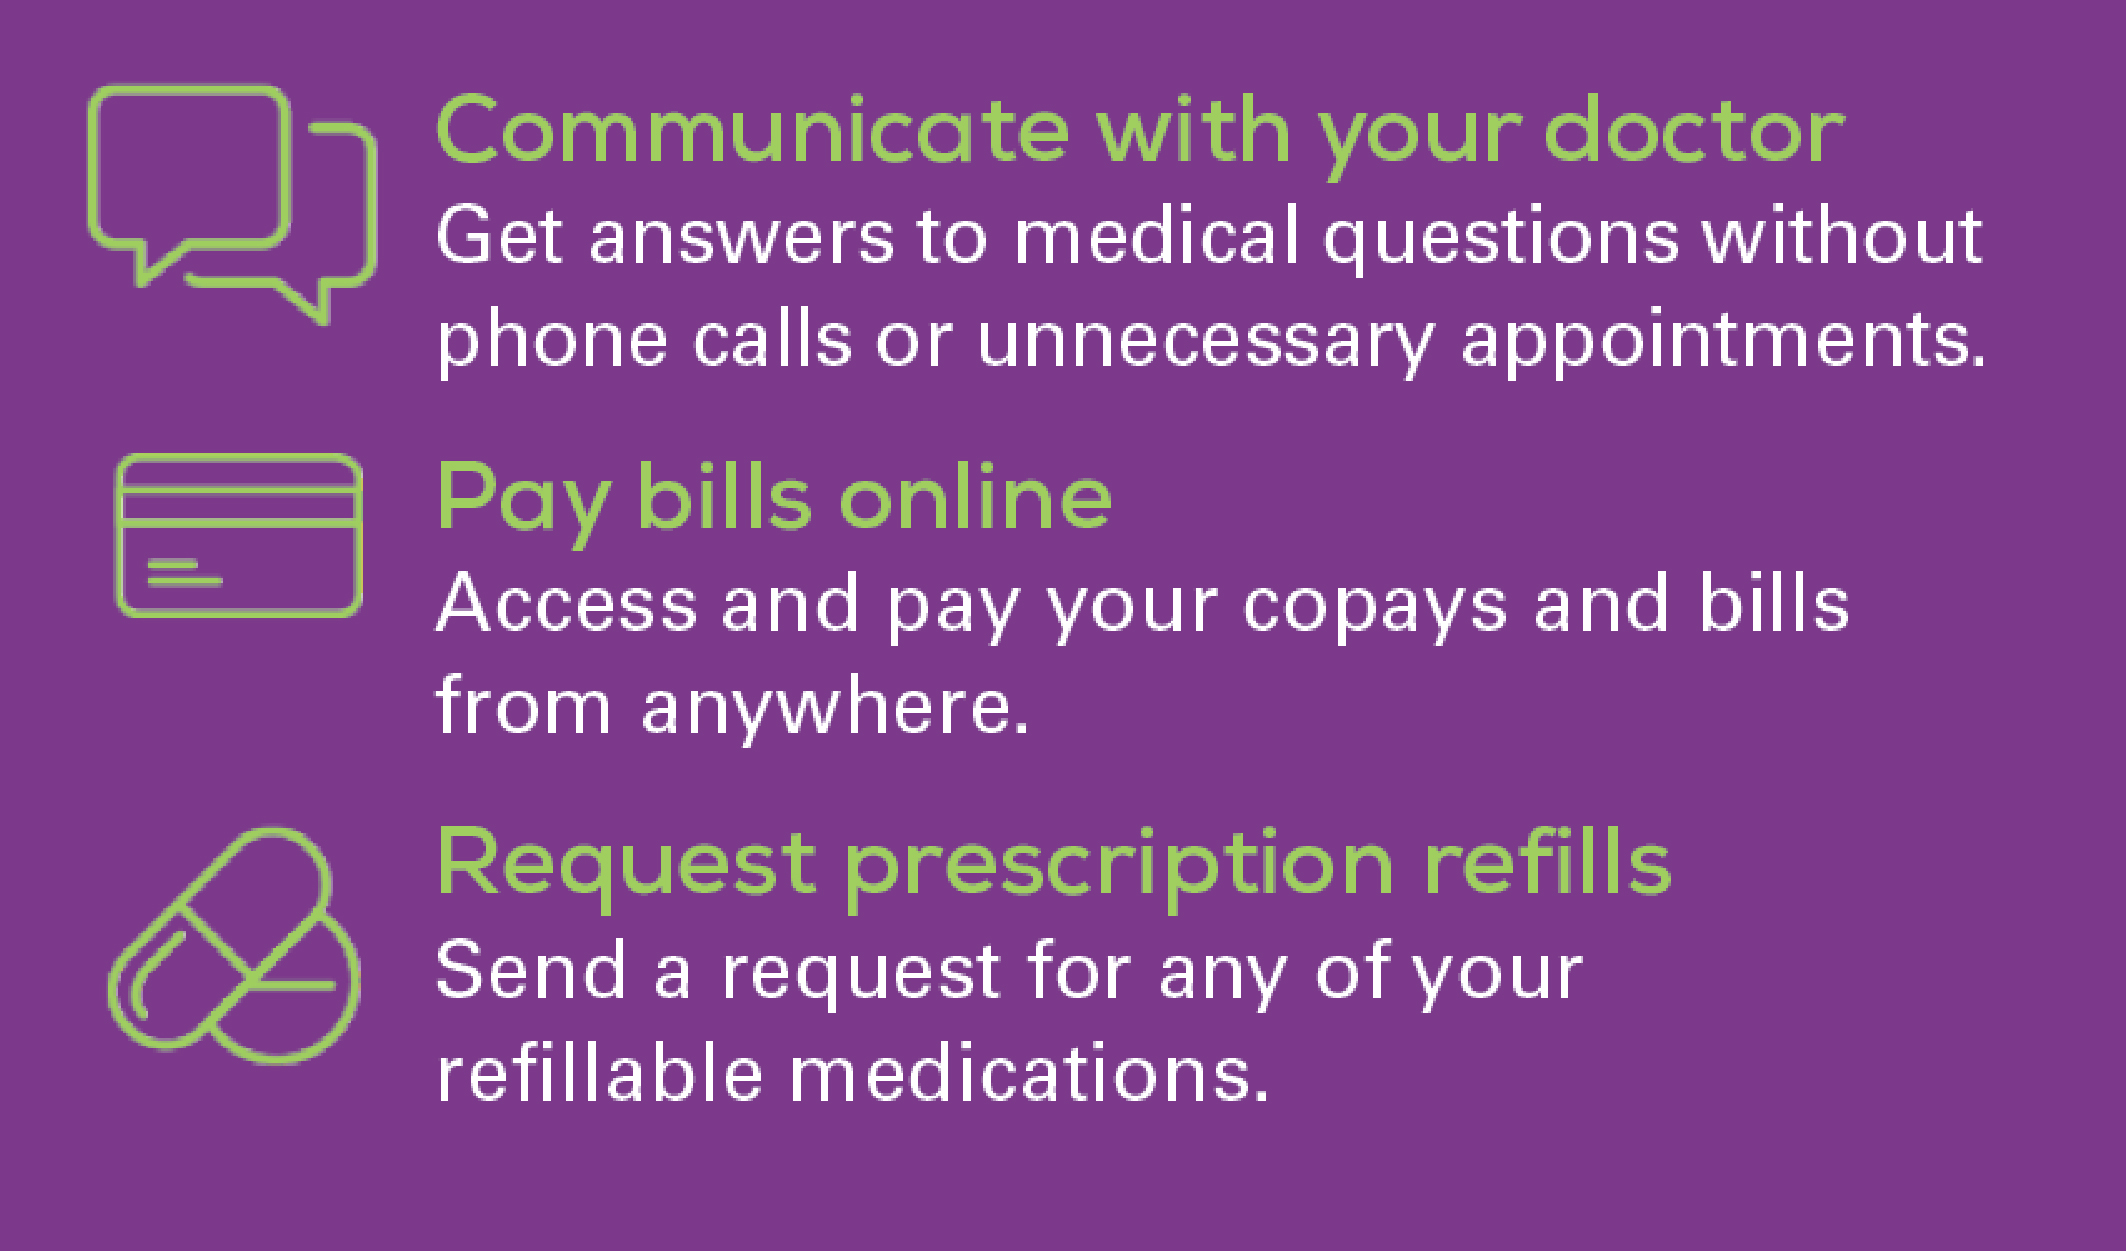 Communicate with your doctor, pay bills online, request prescription refills